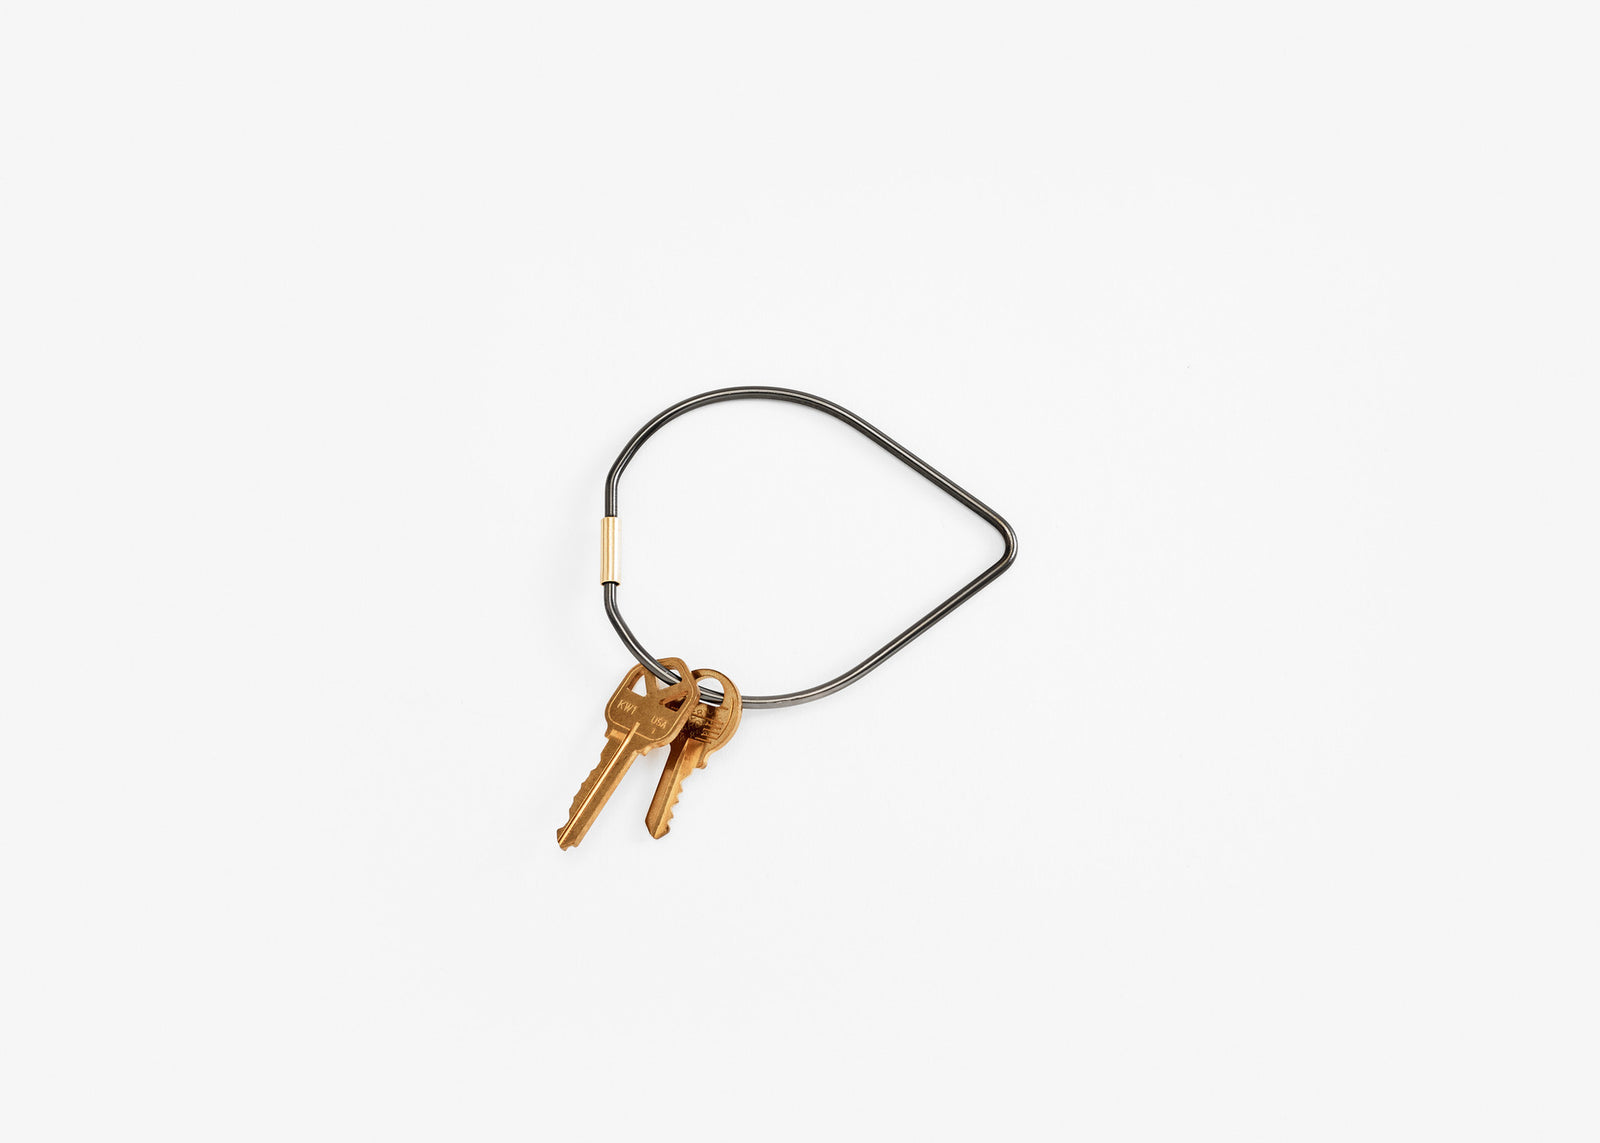 Contour Key Ring - Black/Drop